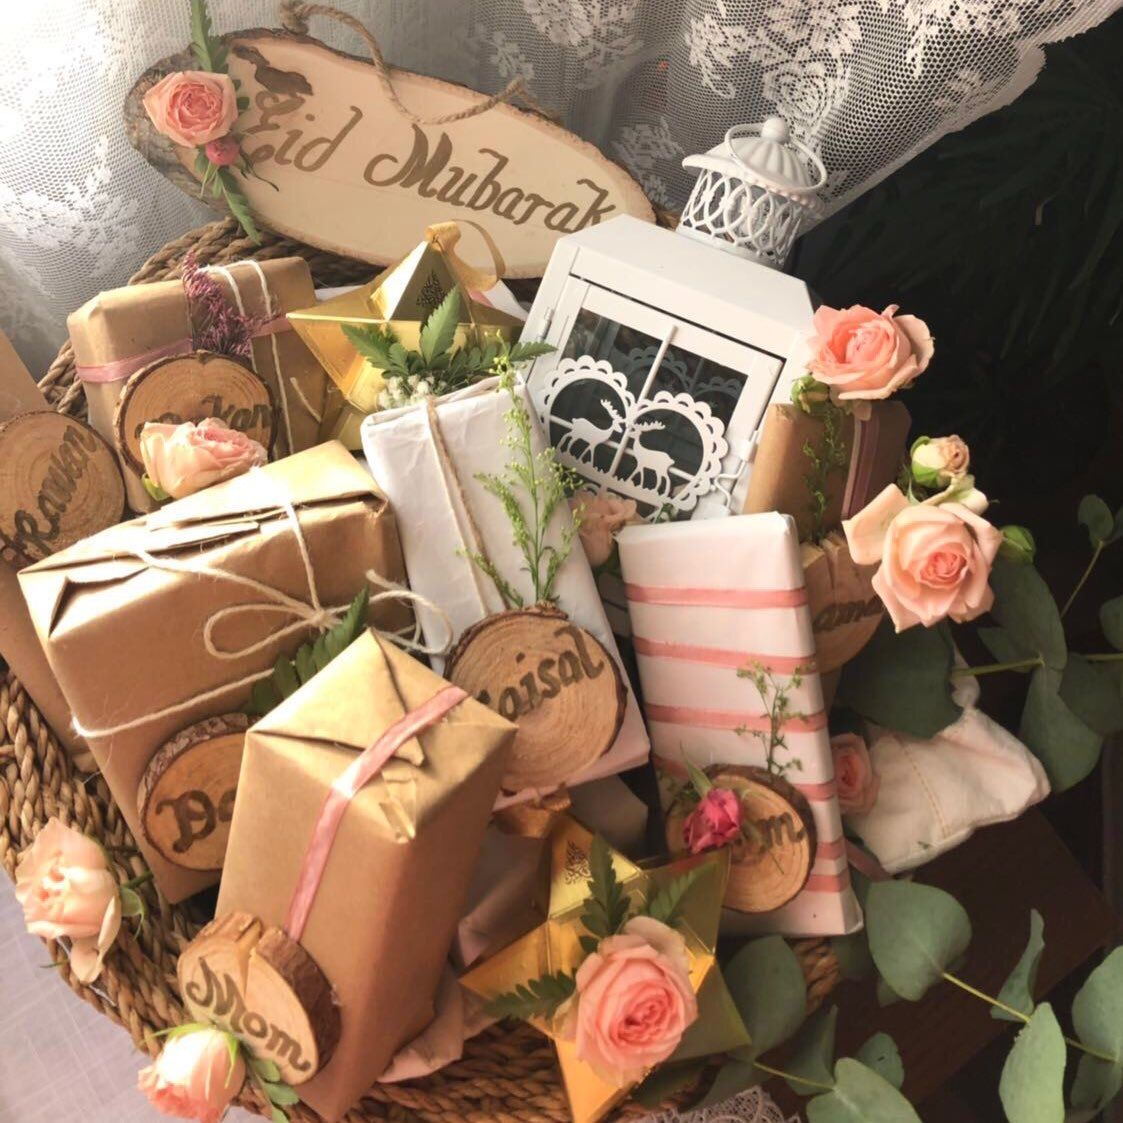 Pin By Shouq On Eid In 2020 Gift Wrapping Gifts Wrap